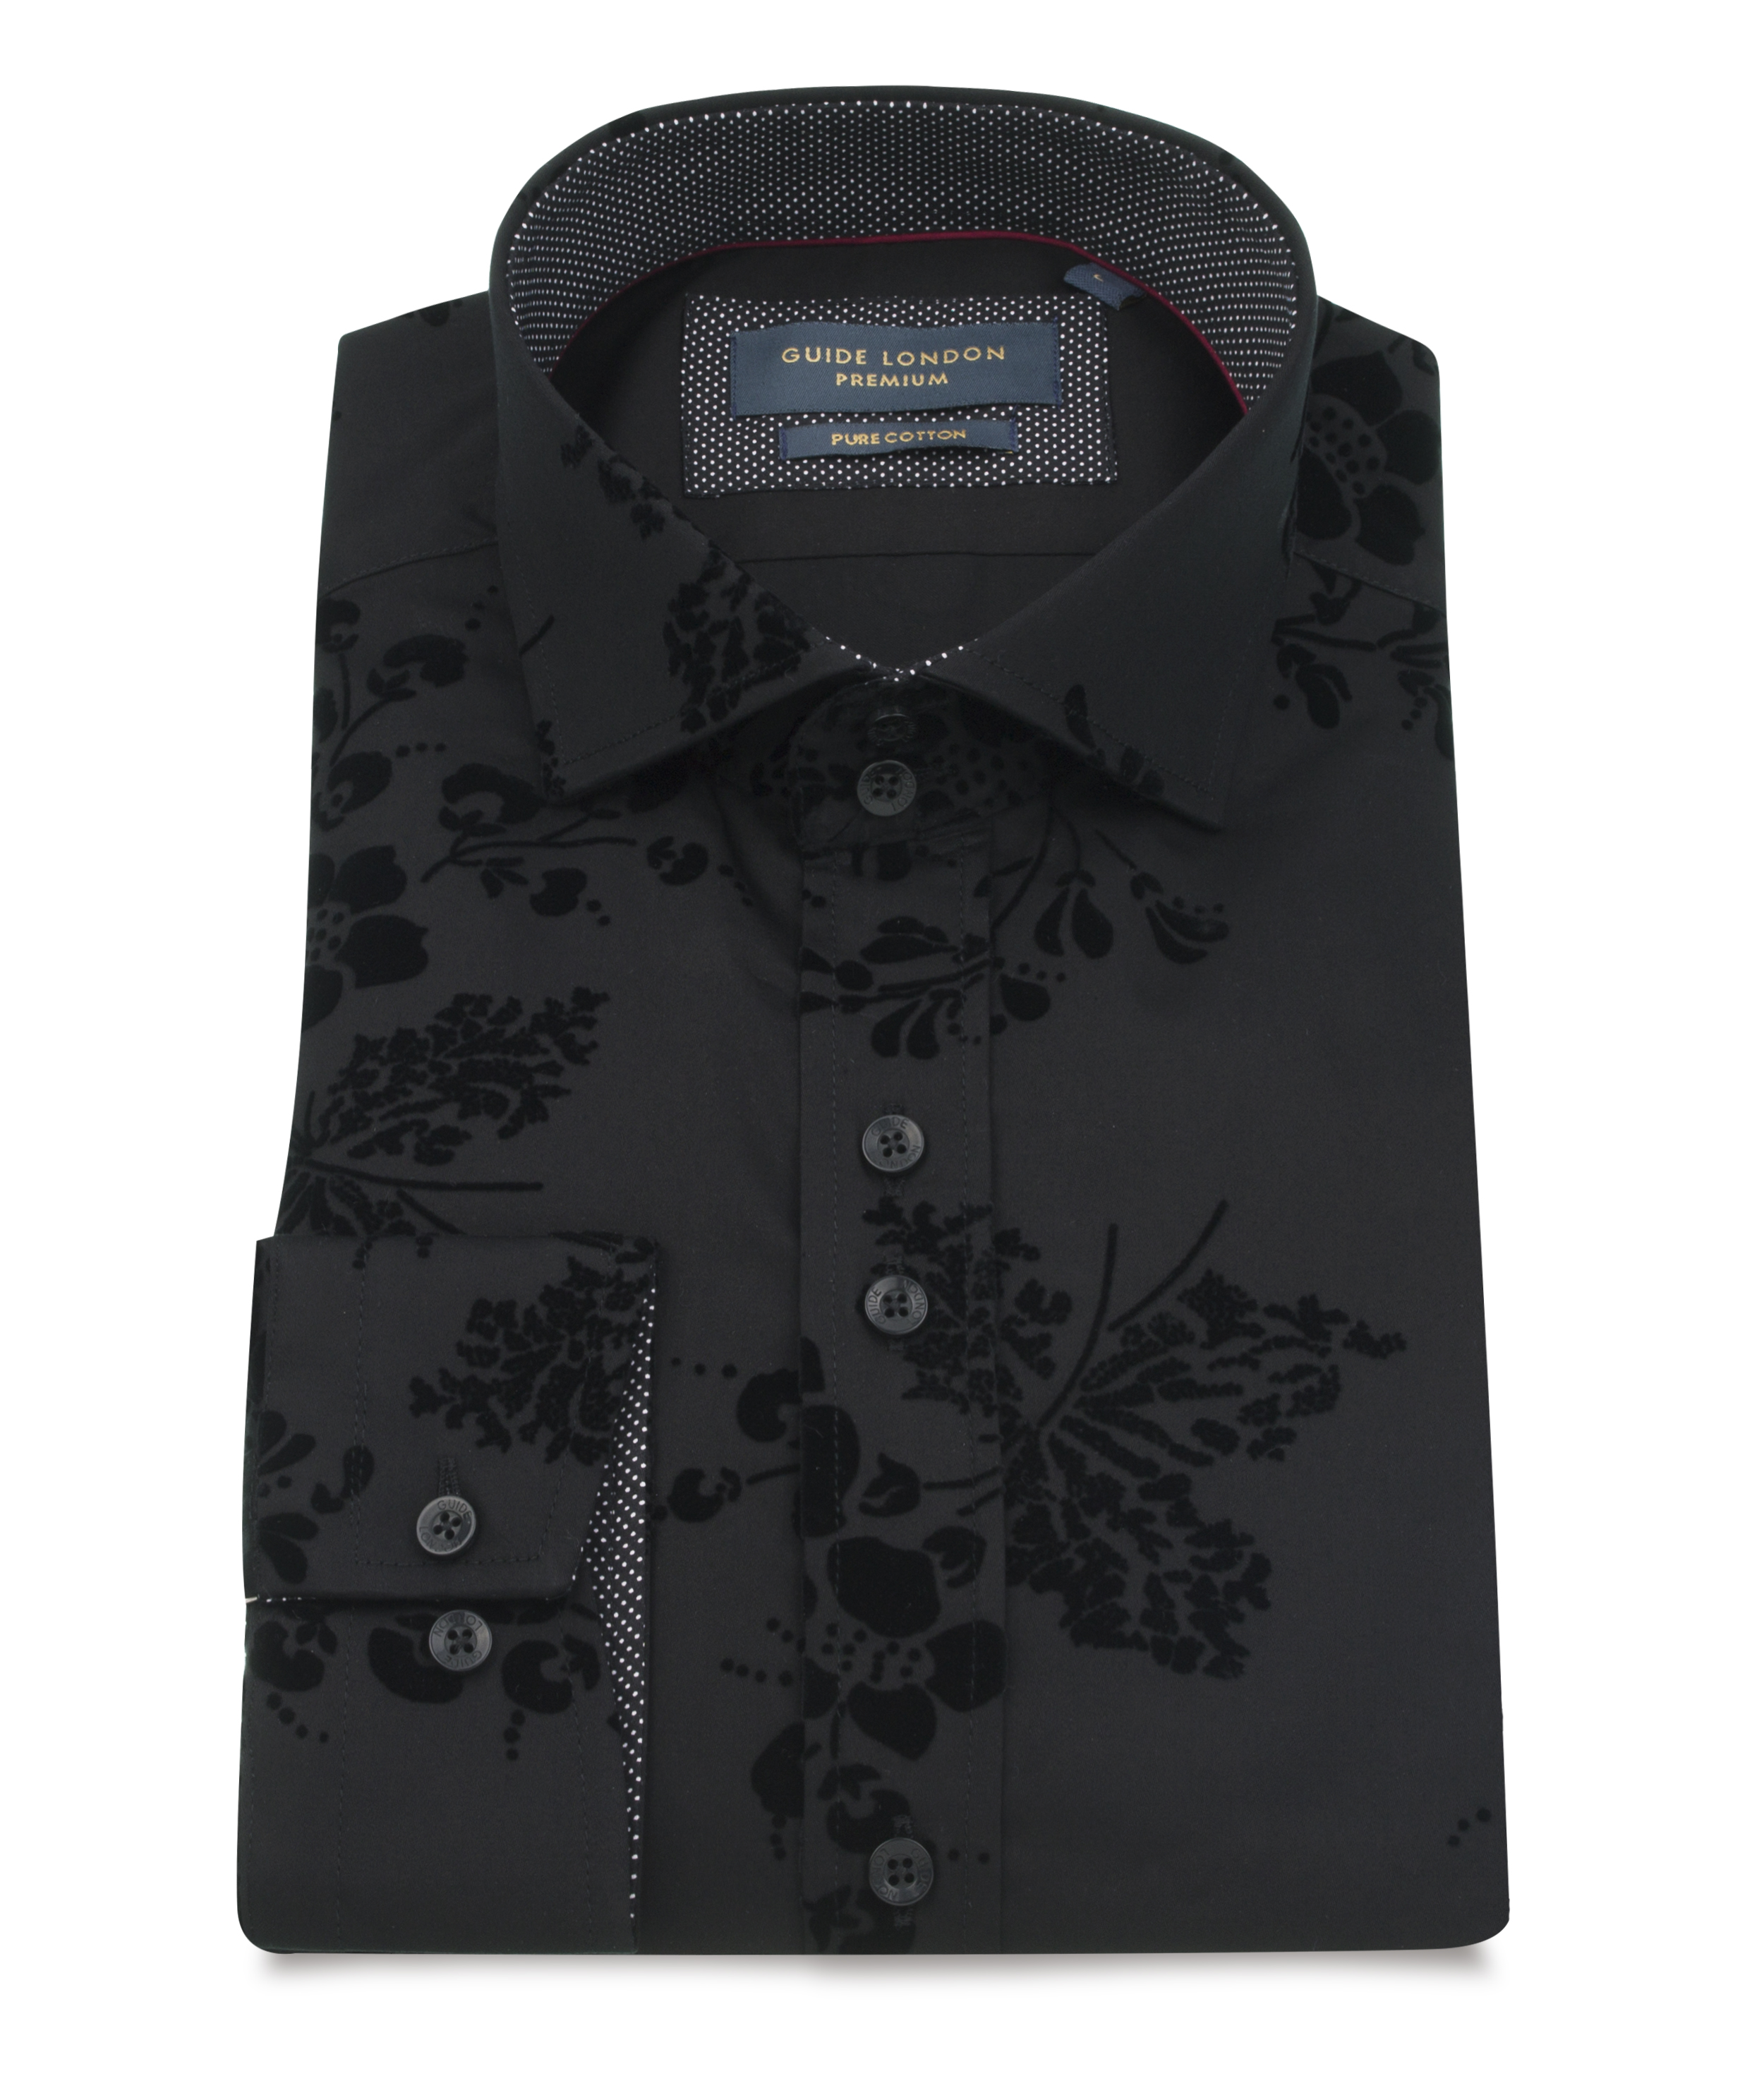 Guide London – LS74872 Shirt – Black